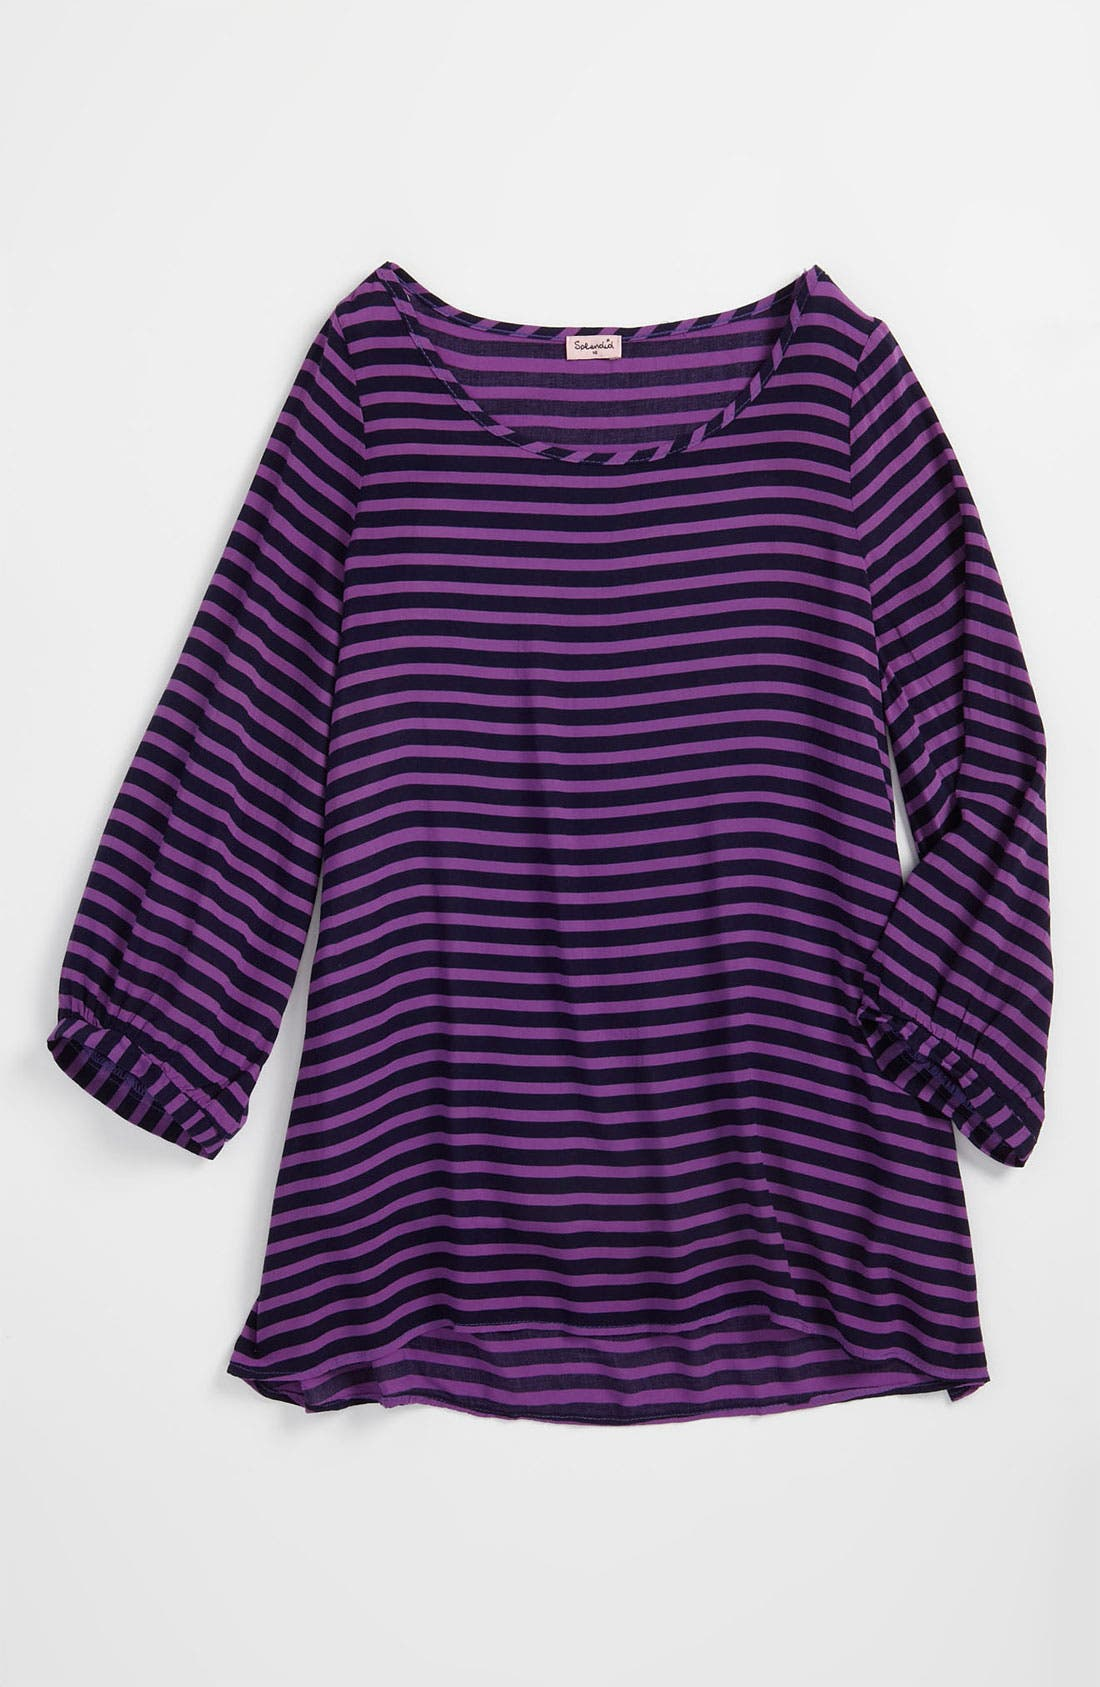 Main Image - Splendid Striped Top (Big Girls)